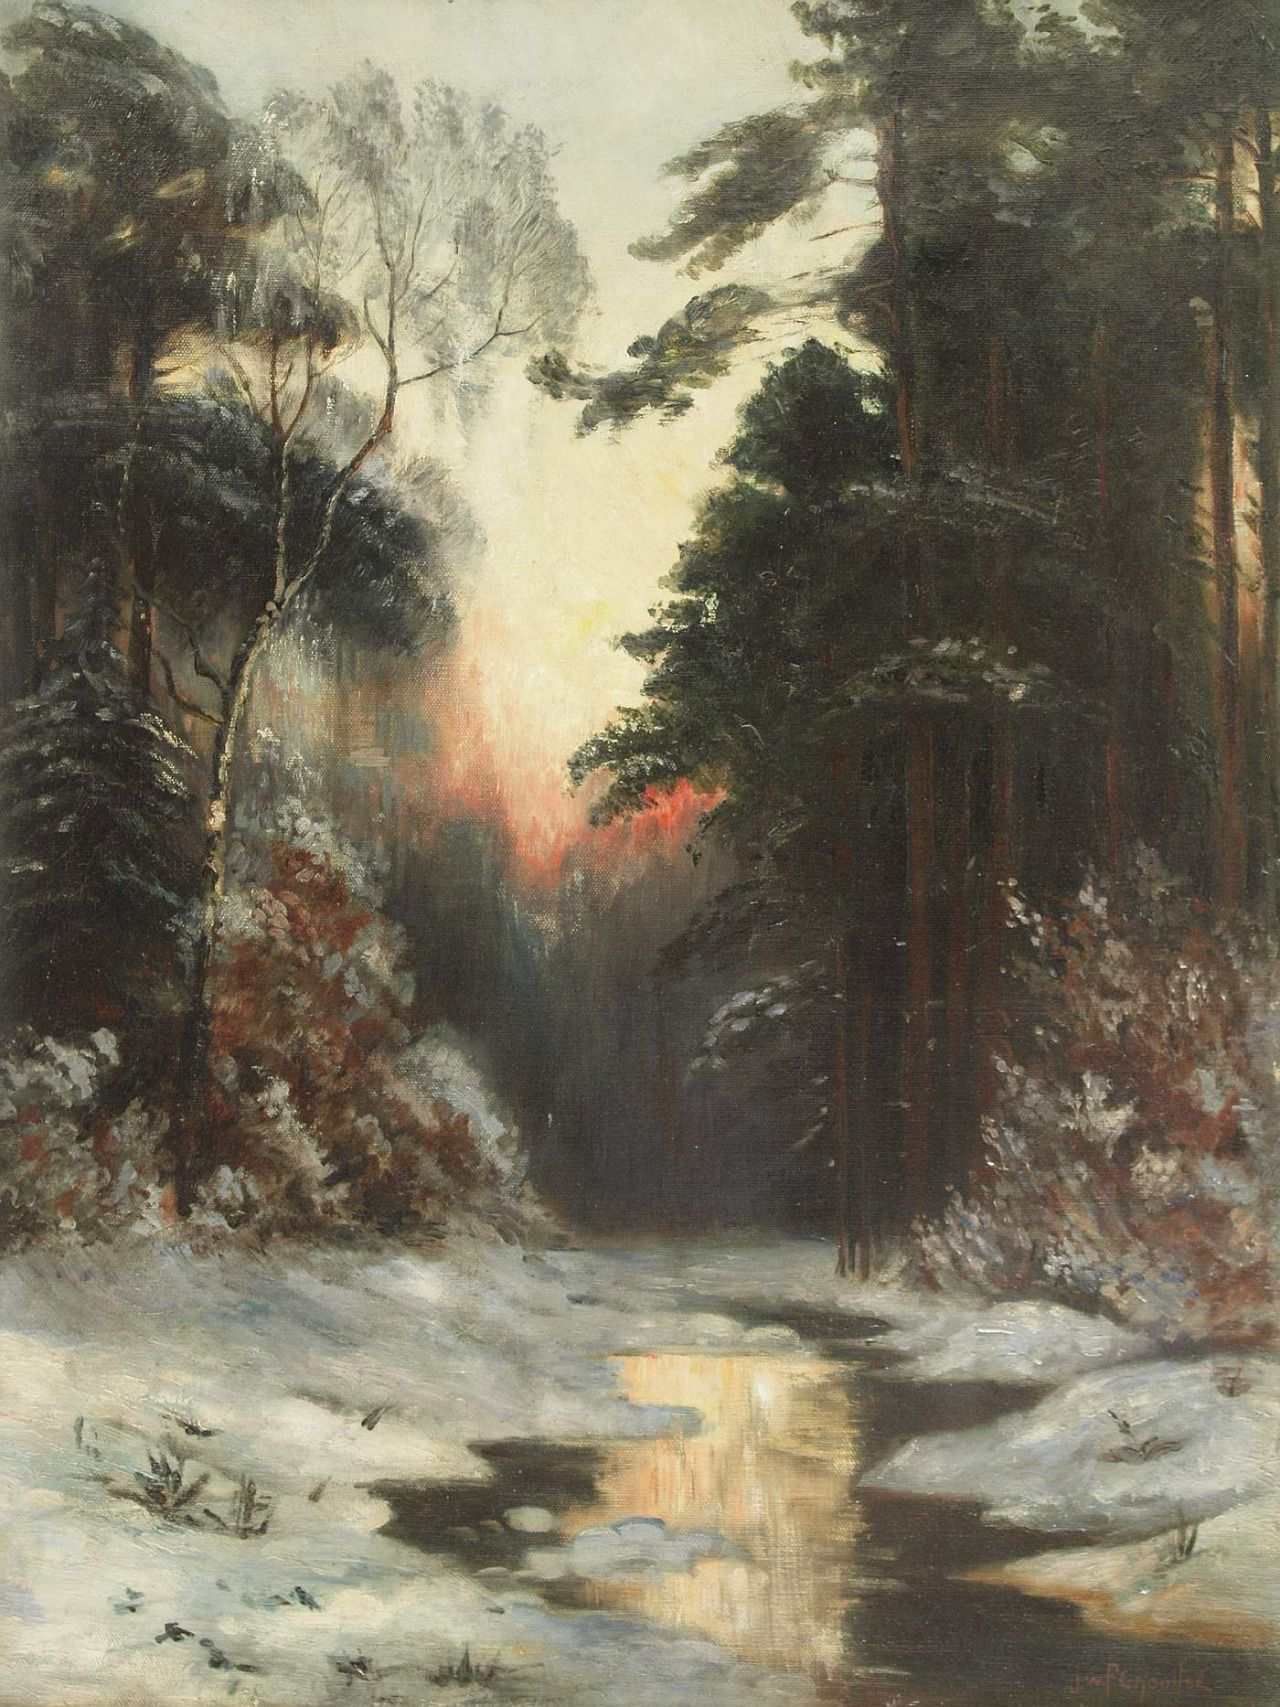 Stream in a Winter Landscape with Evening Sun, Ivan Fedorovich Choultsé